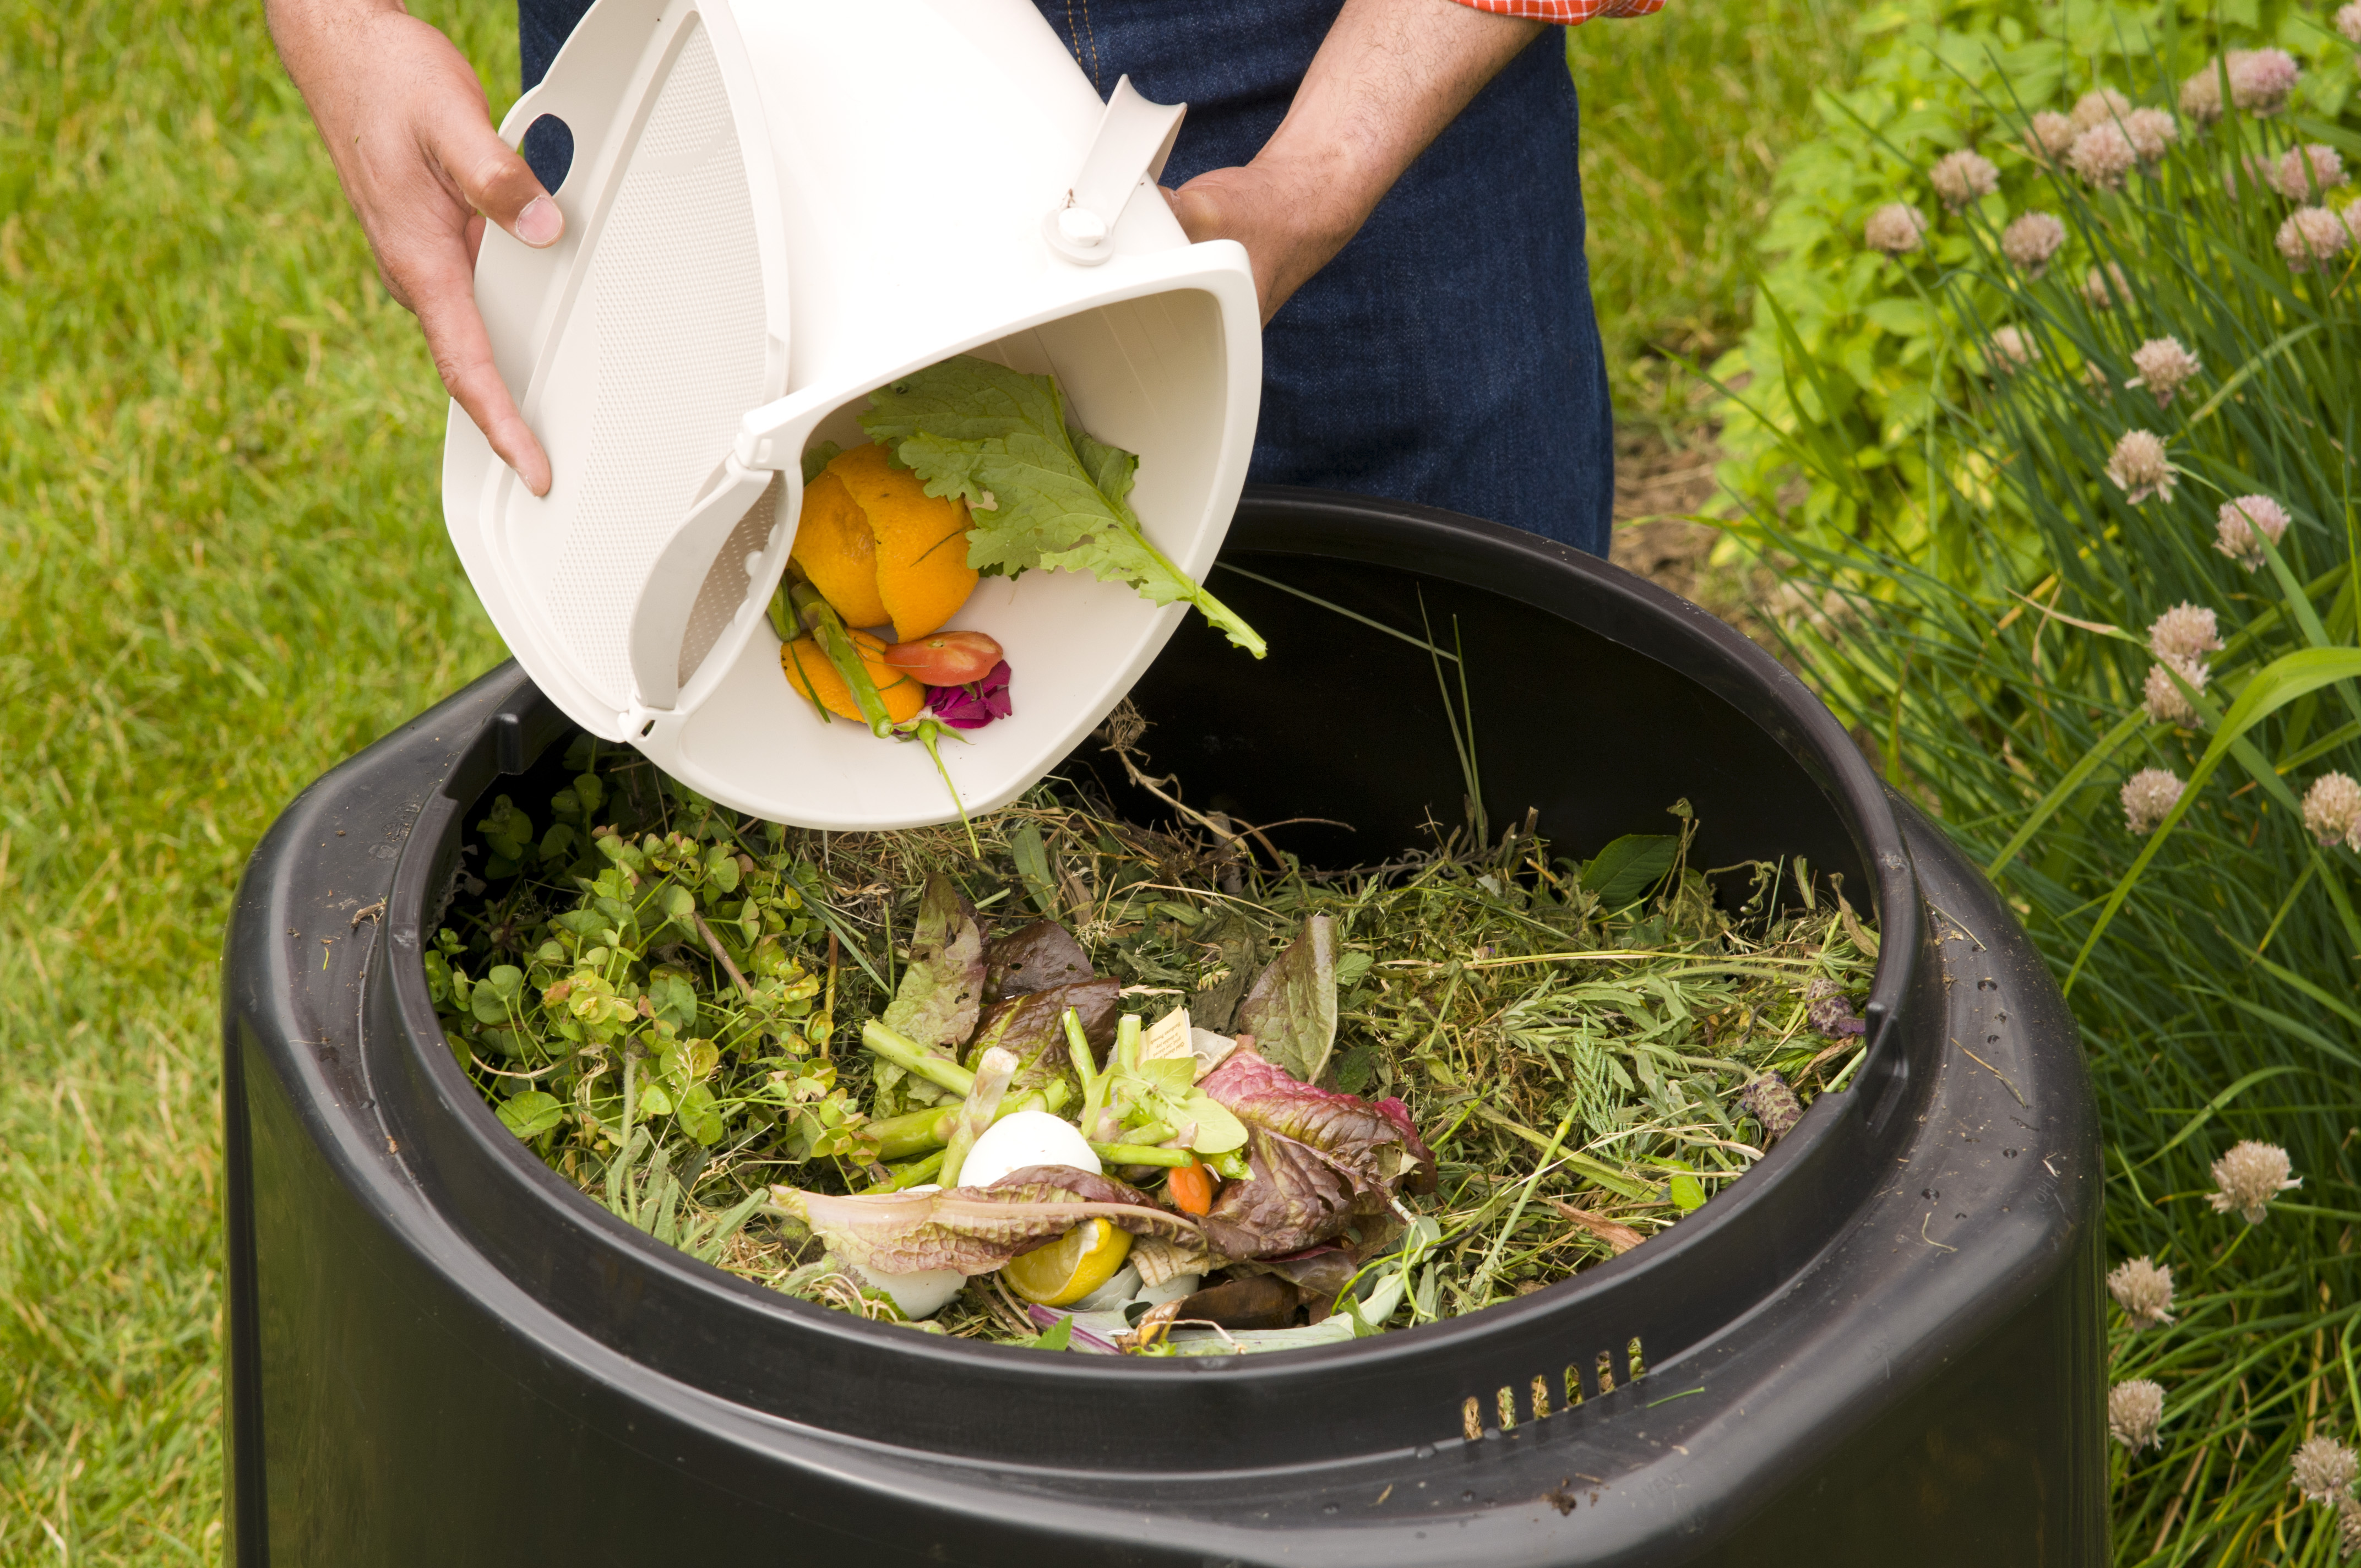 Waste Not, Want Not: 14 Ways You Can Reduce Food Waste at Home